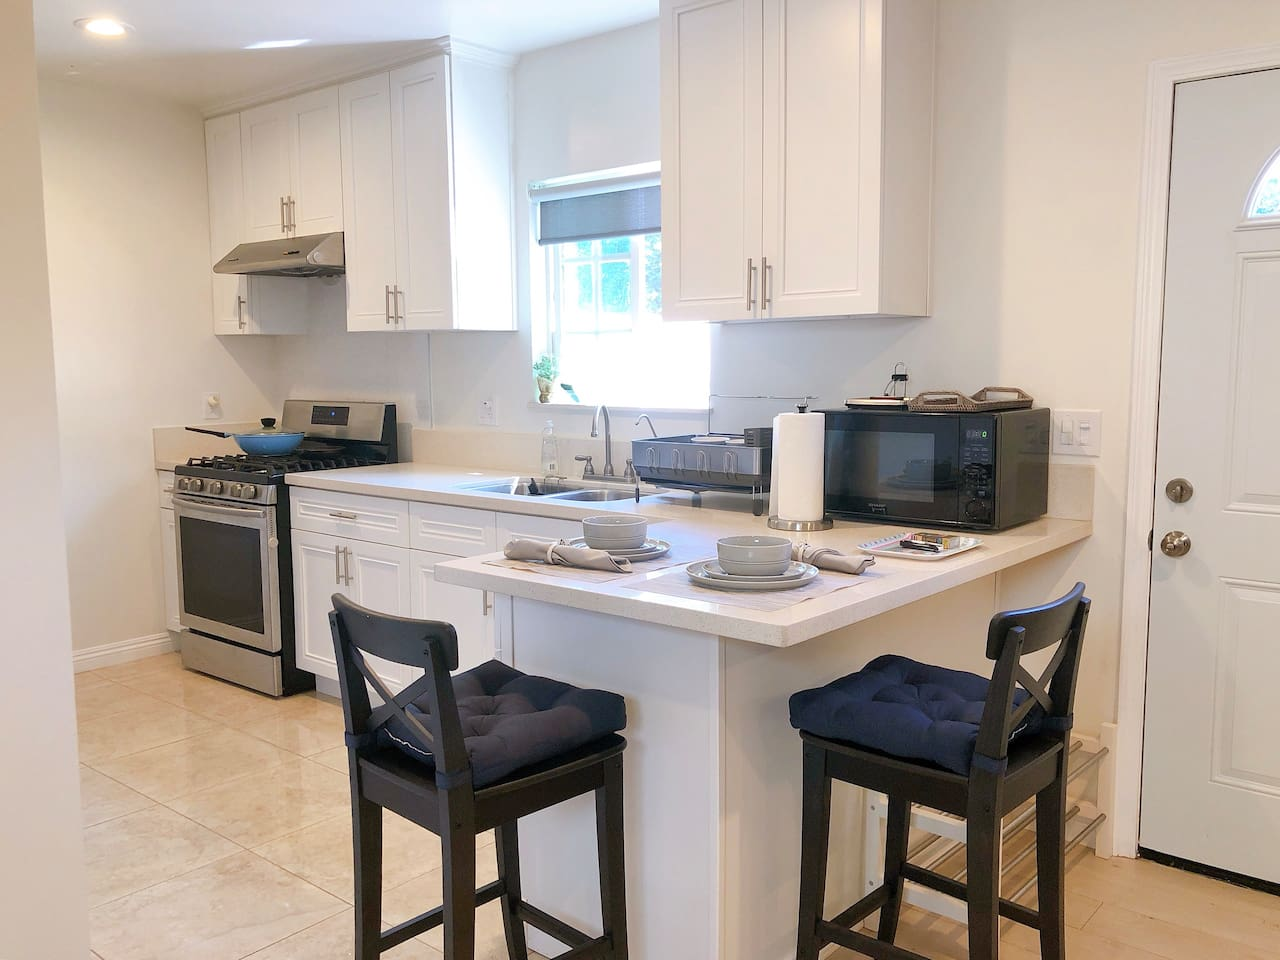 Full-size, fully stocked kitchen with modern appliances including fridge, stove, oven, microwave, and hot water kettle